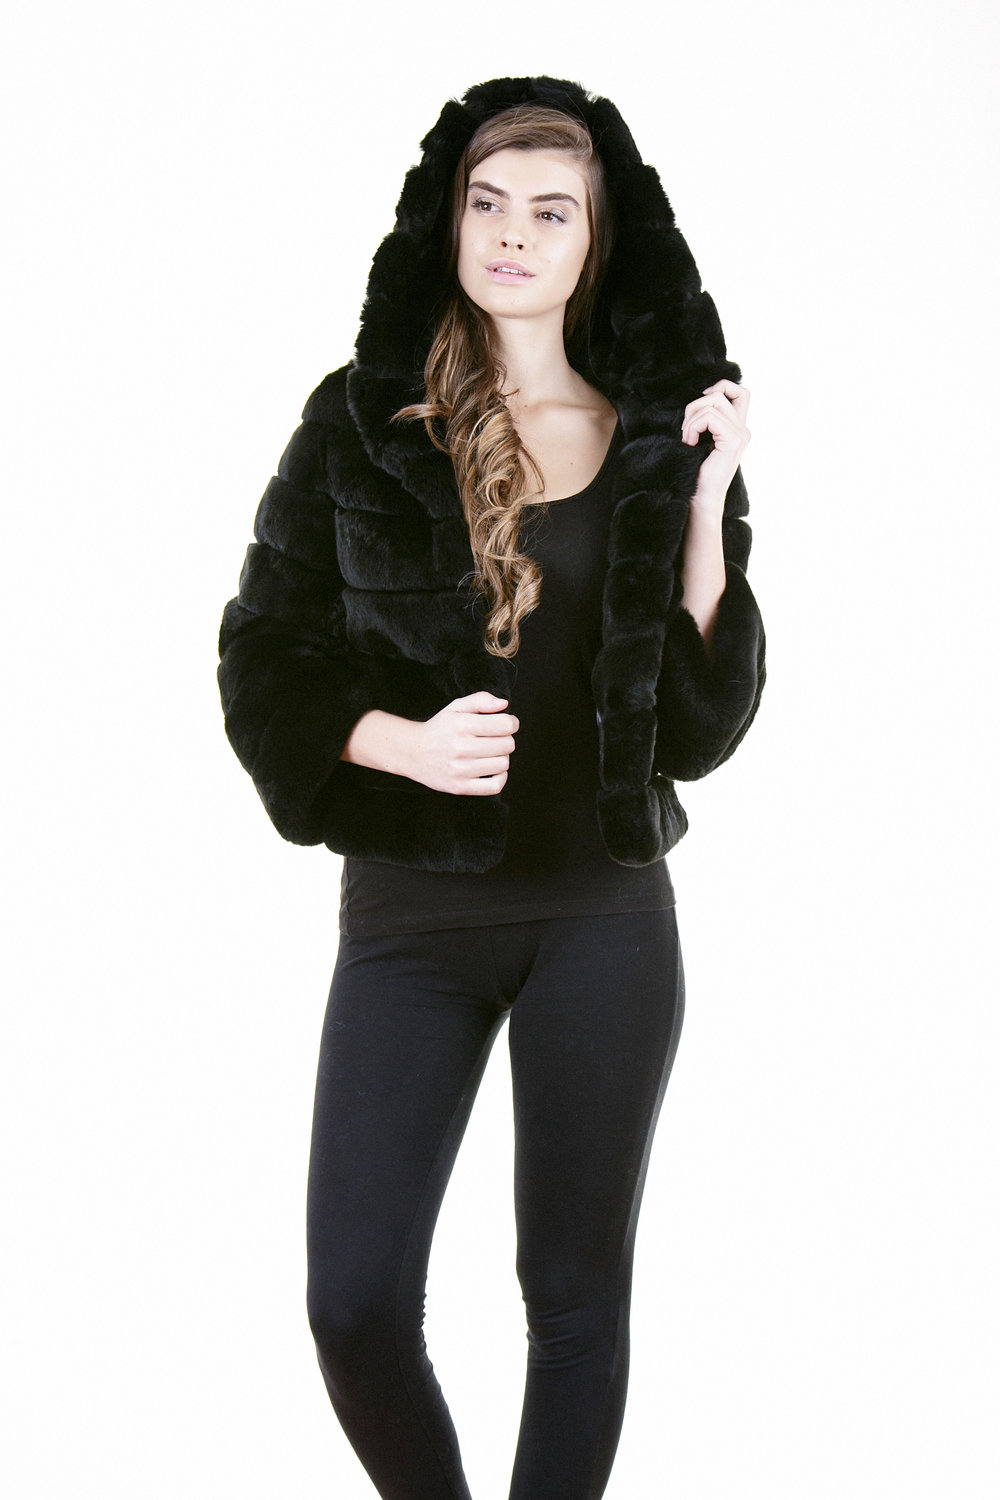 HOODED NAYA BLACK HOOD-UP-1.jpg